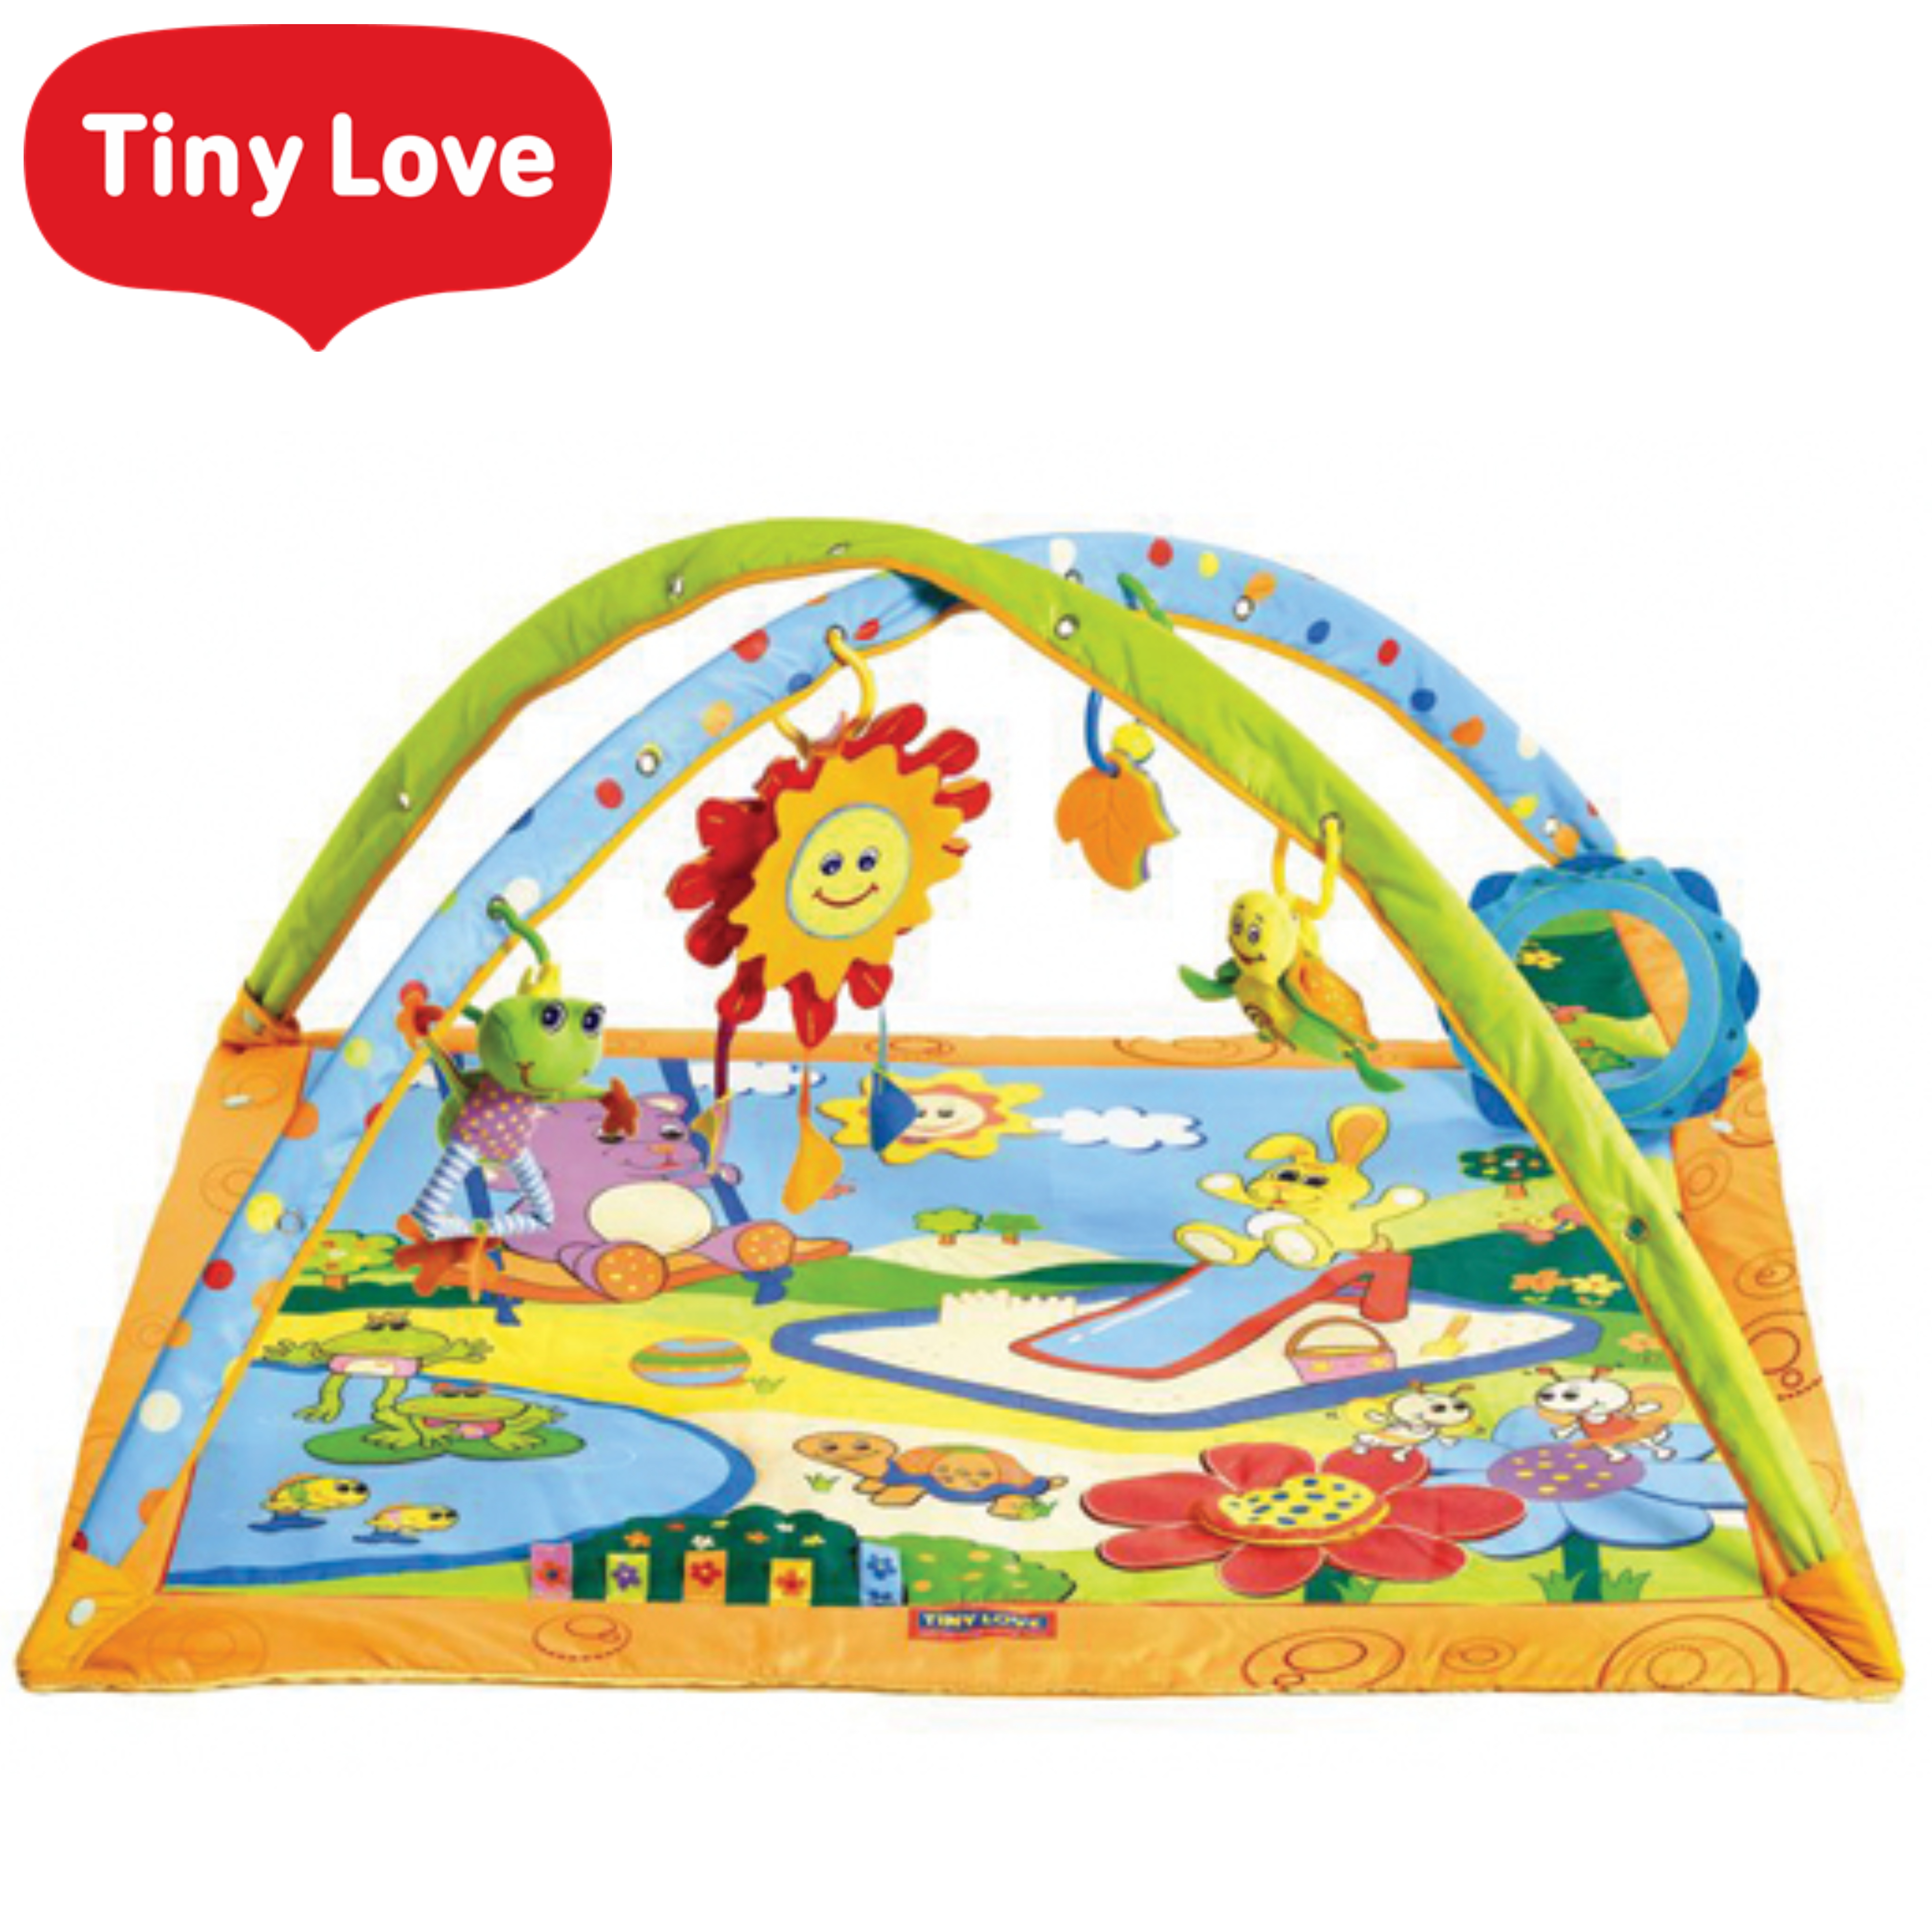 Tiny Love Gymini Sunny Day Play Gym | Musical Toys | Baby Tummy/Play-Time Mat | Mirror | New